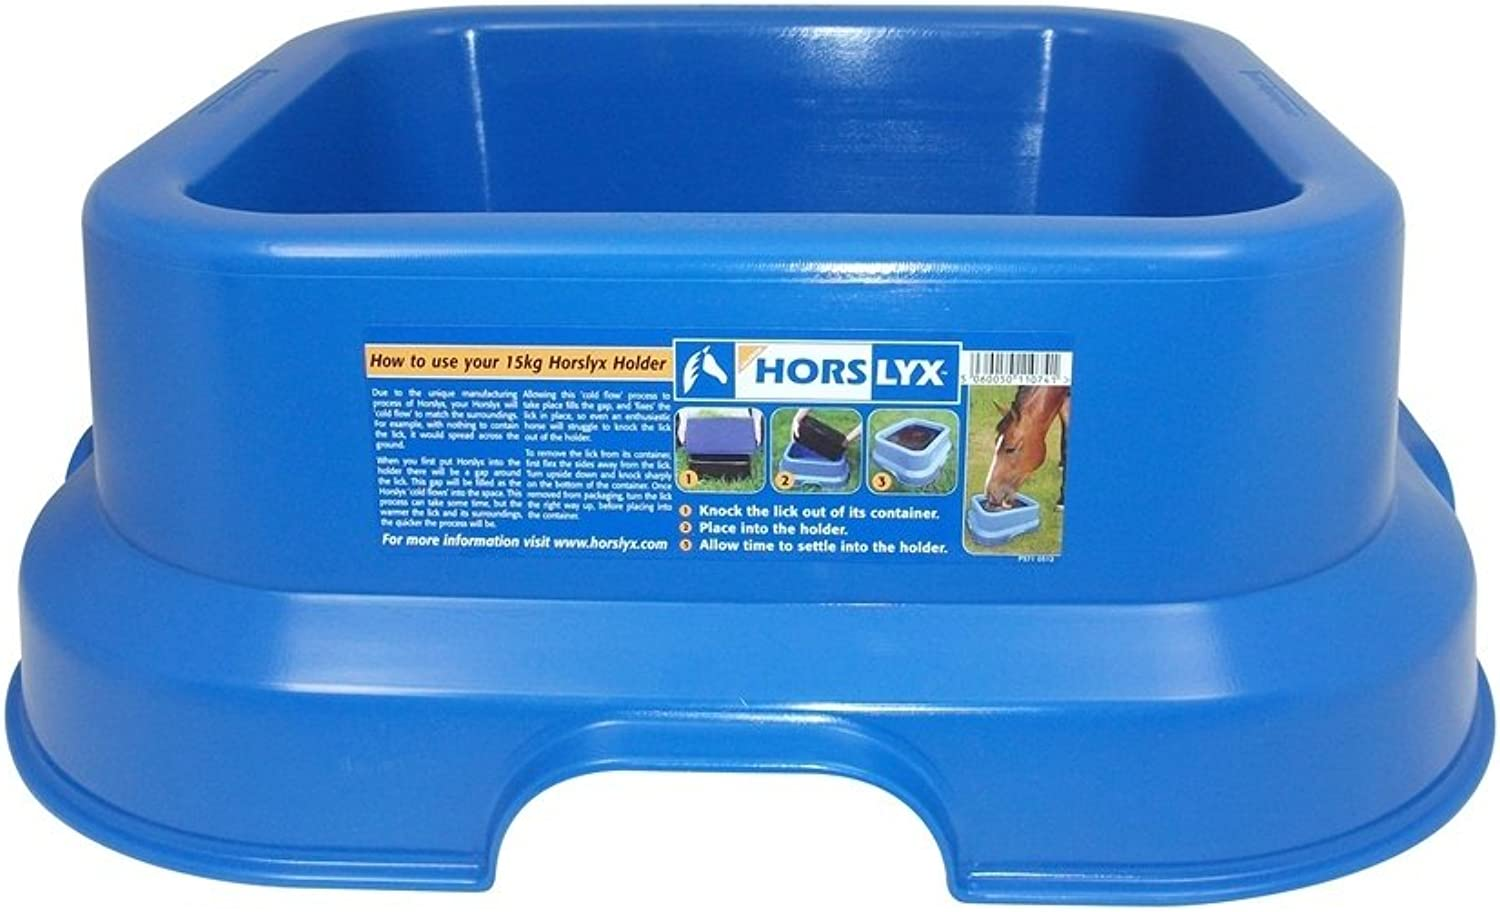 Horslyx 15kg Lick Holder (One Size) (May Vary)